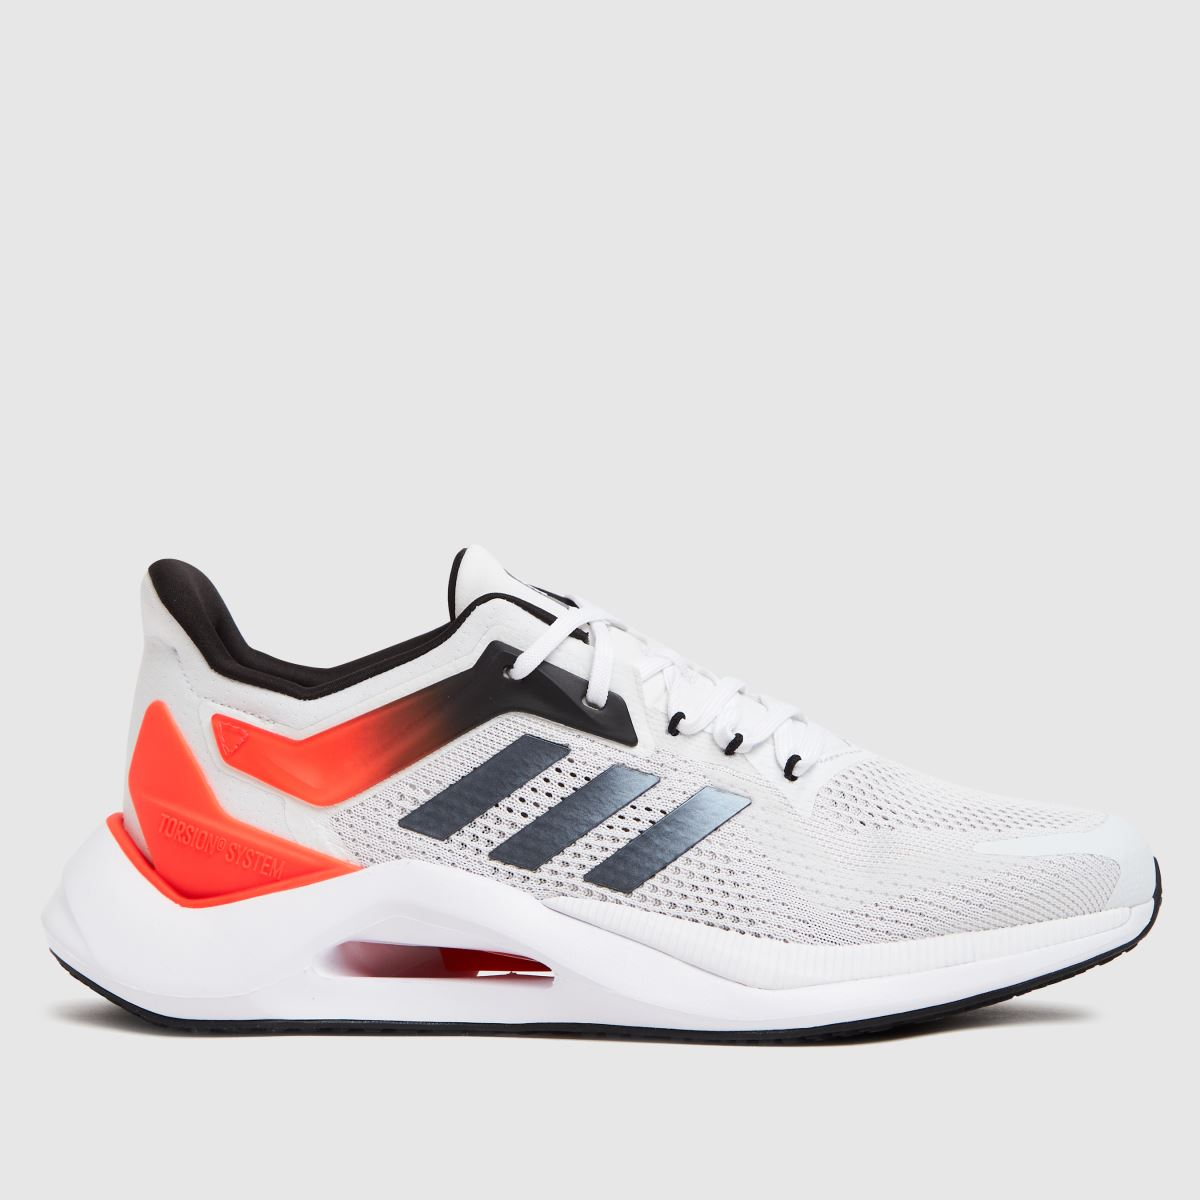 Adidas White & Red Alphatorsion 2.0 Trainers